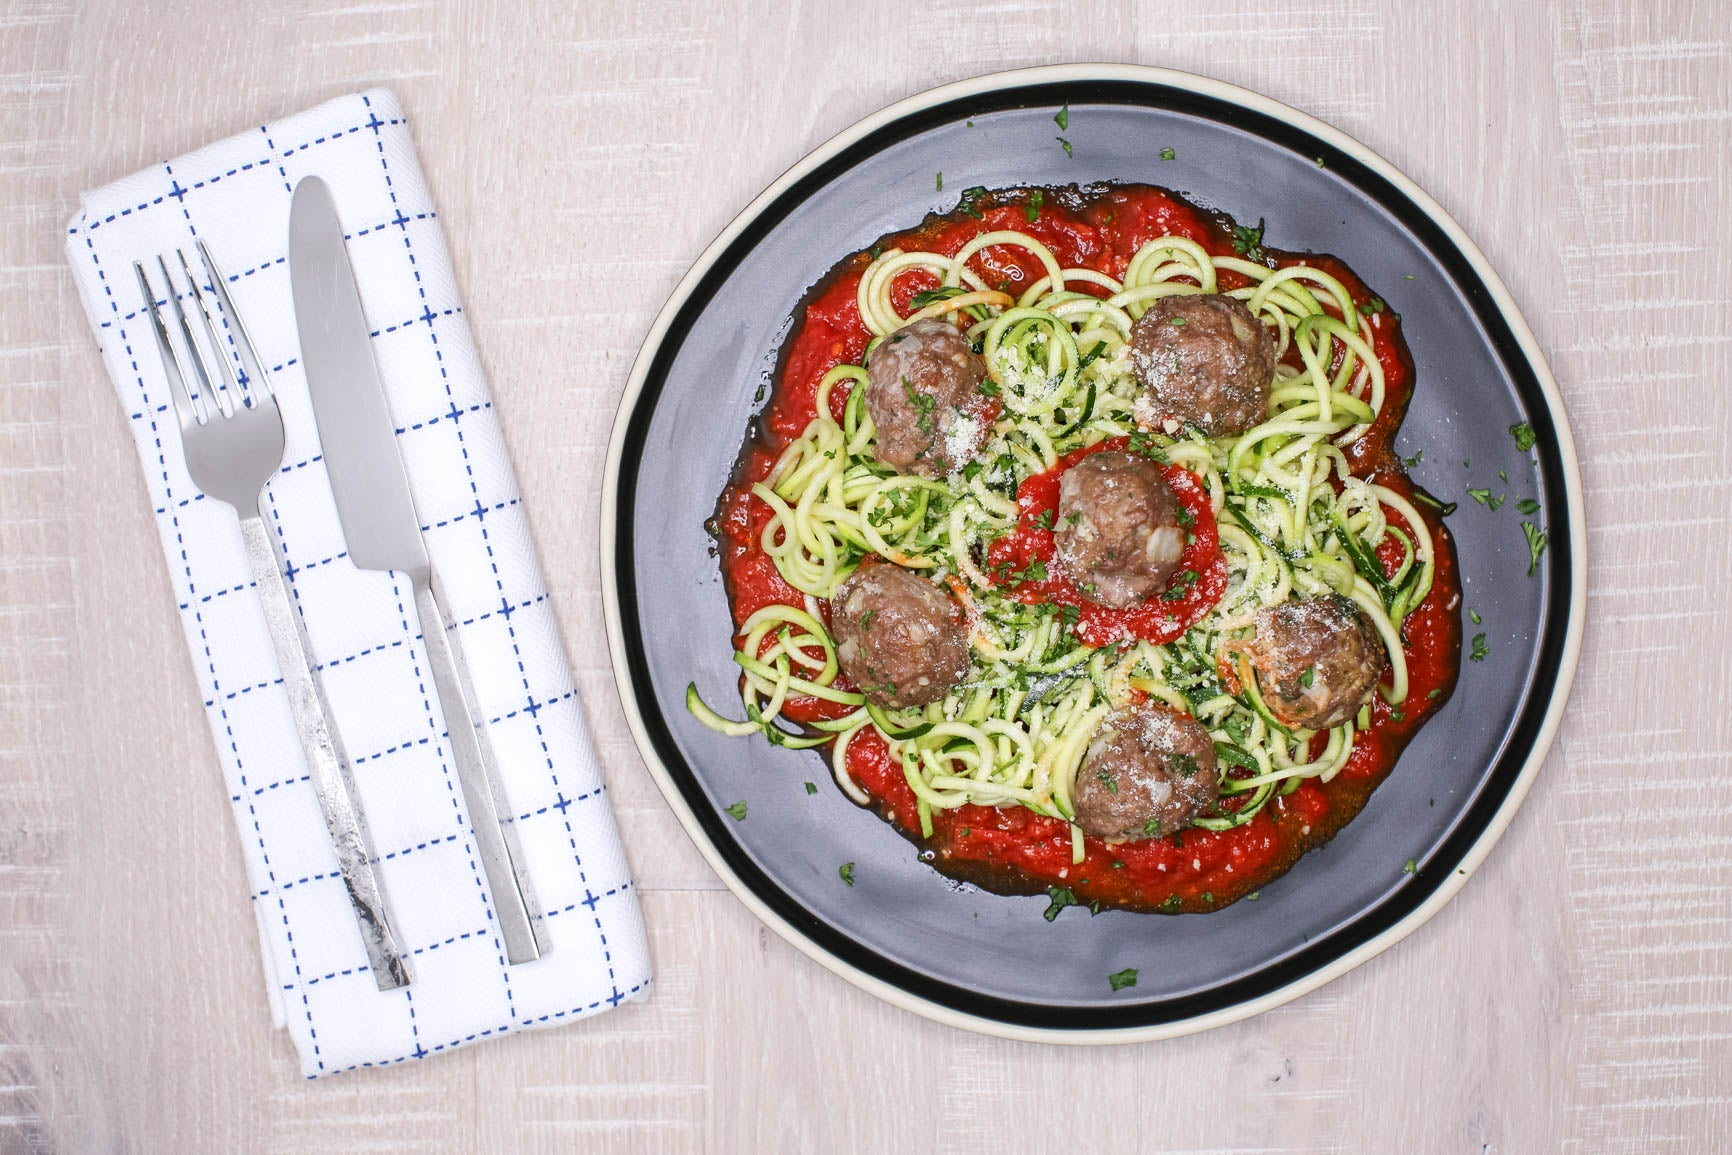 Low-carb Gluten-free Meatballs & Zucchini Noodles